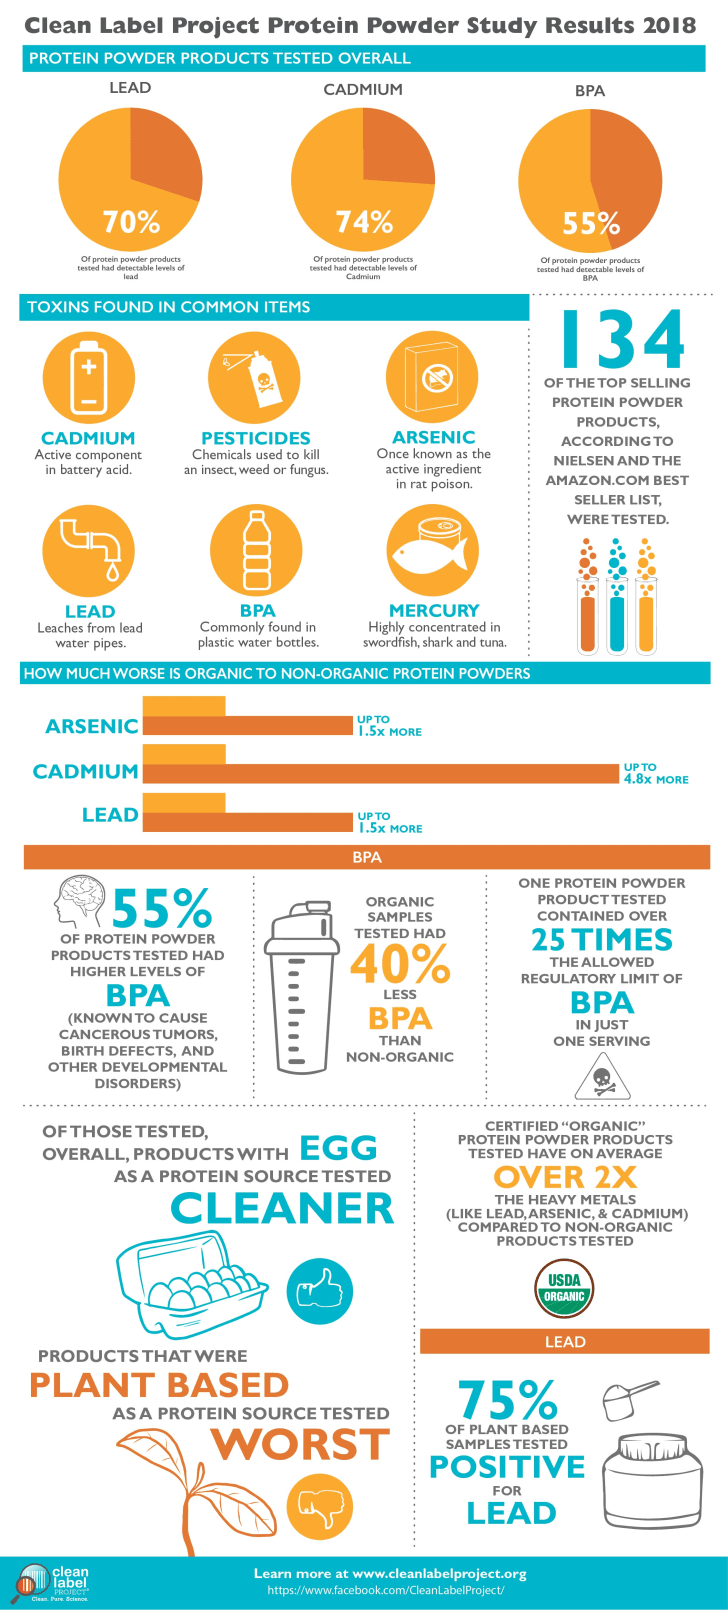 A Clean Label Project infographic explaining the contaminants found in protein powders